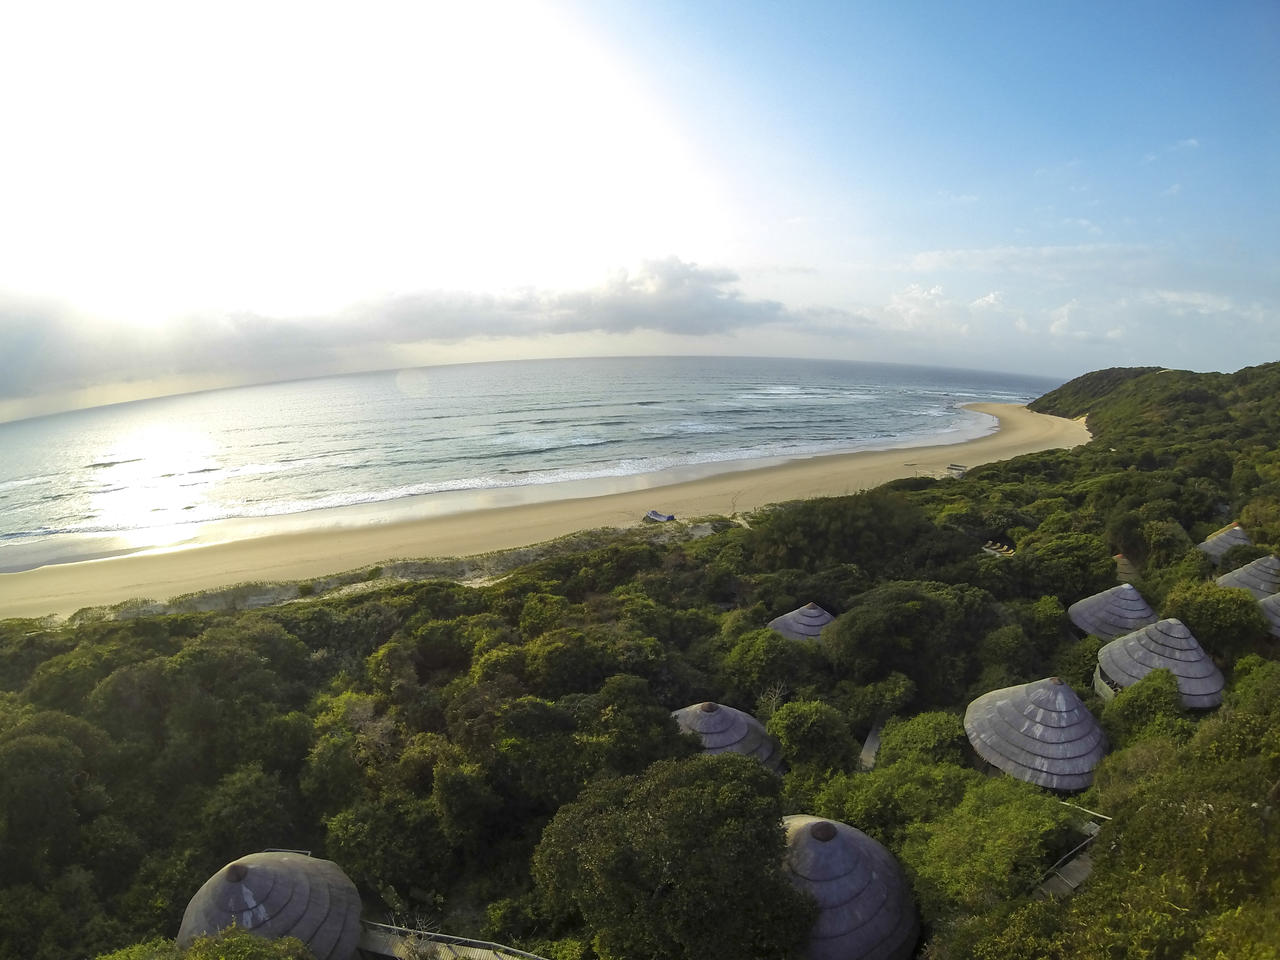 sunny aerial view of thonga beach lodge overlooking green lush trees and sandy beach